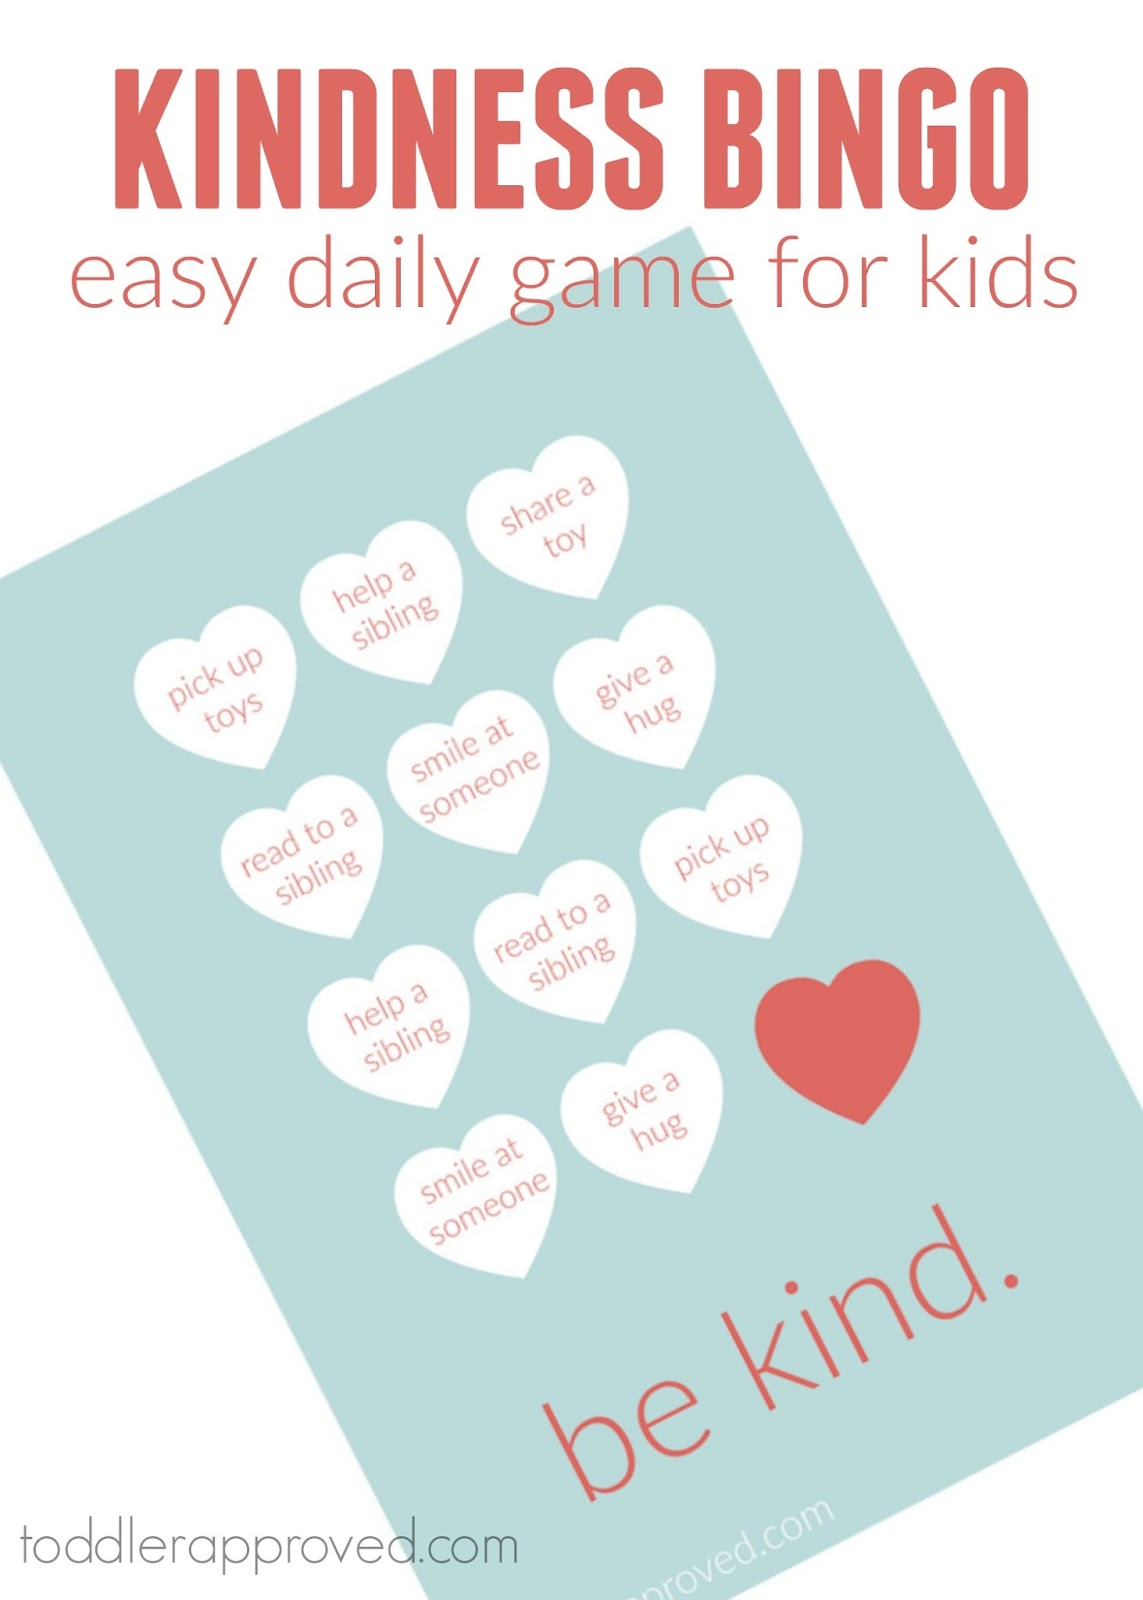 Toddler Approved Quick Daily Kindness Bingo Game For Kids